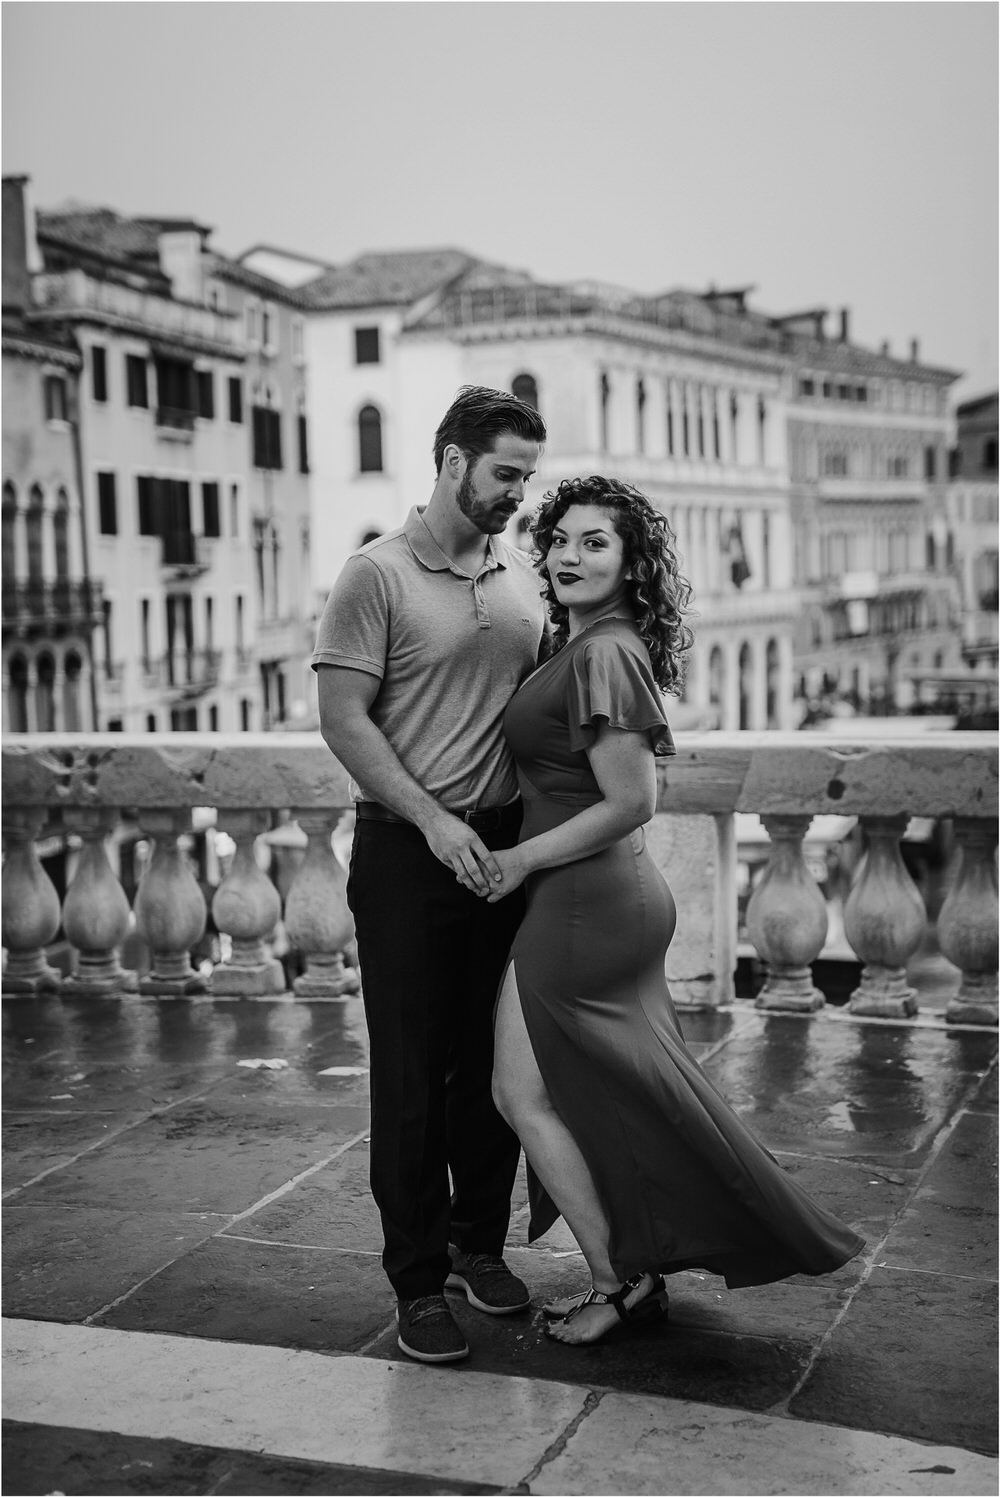 venezia venice wedding photographer photography real honest moody lookslikefilm italy italia matrimonio amore photography fotograf 0010.jpg